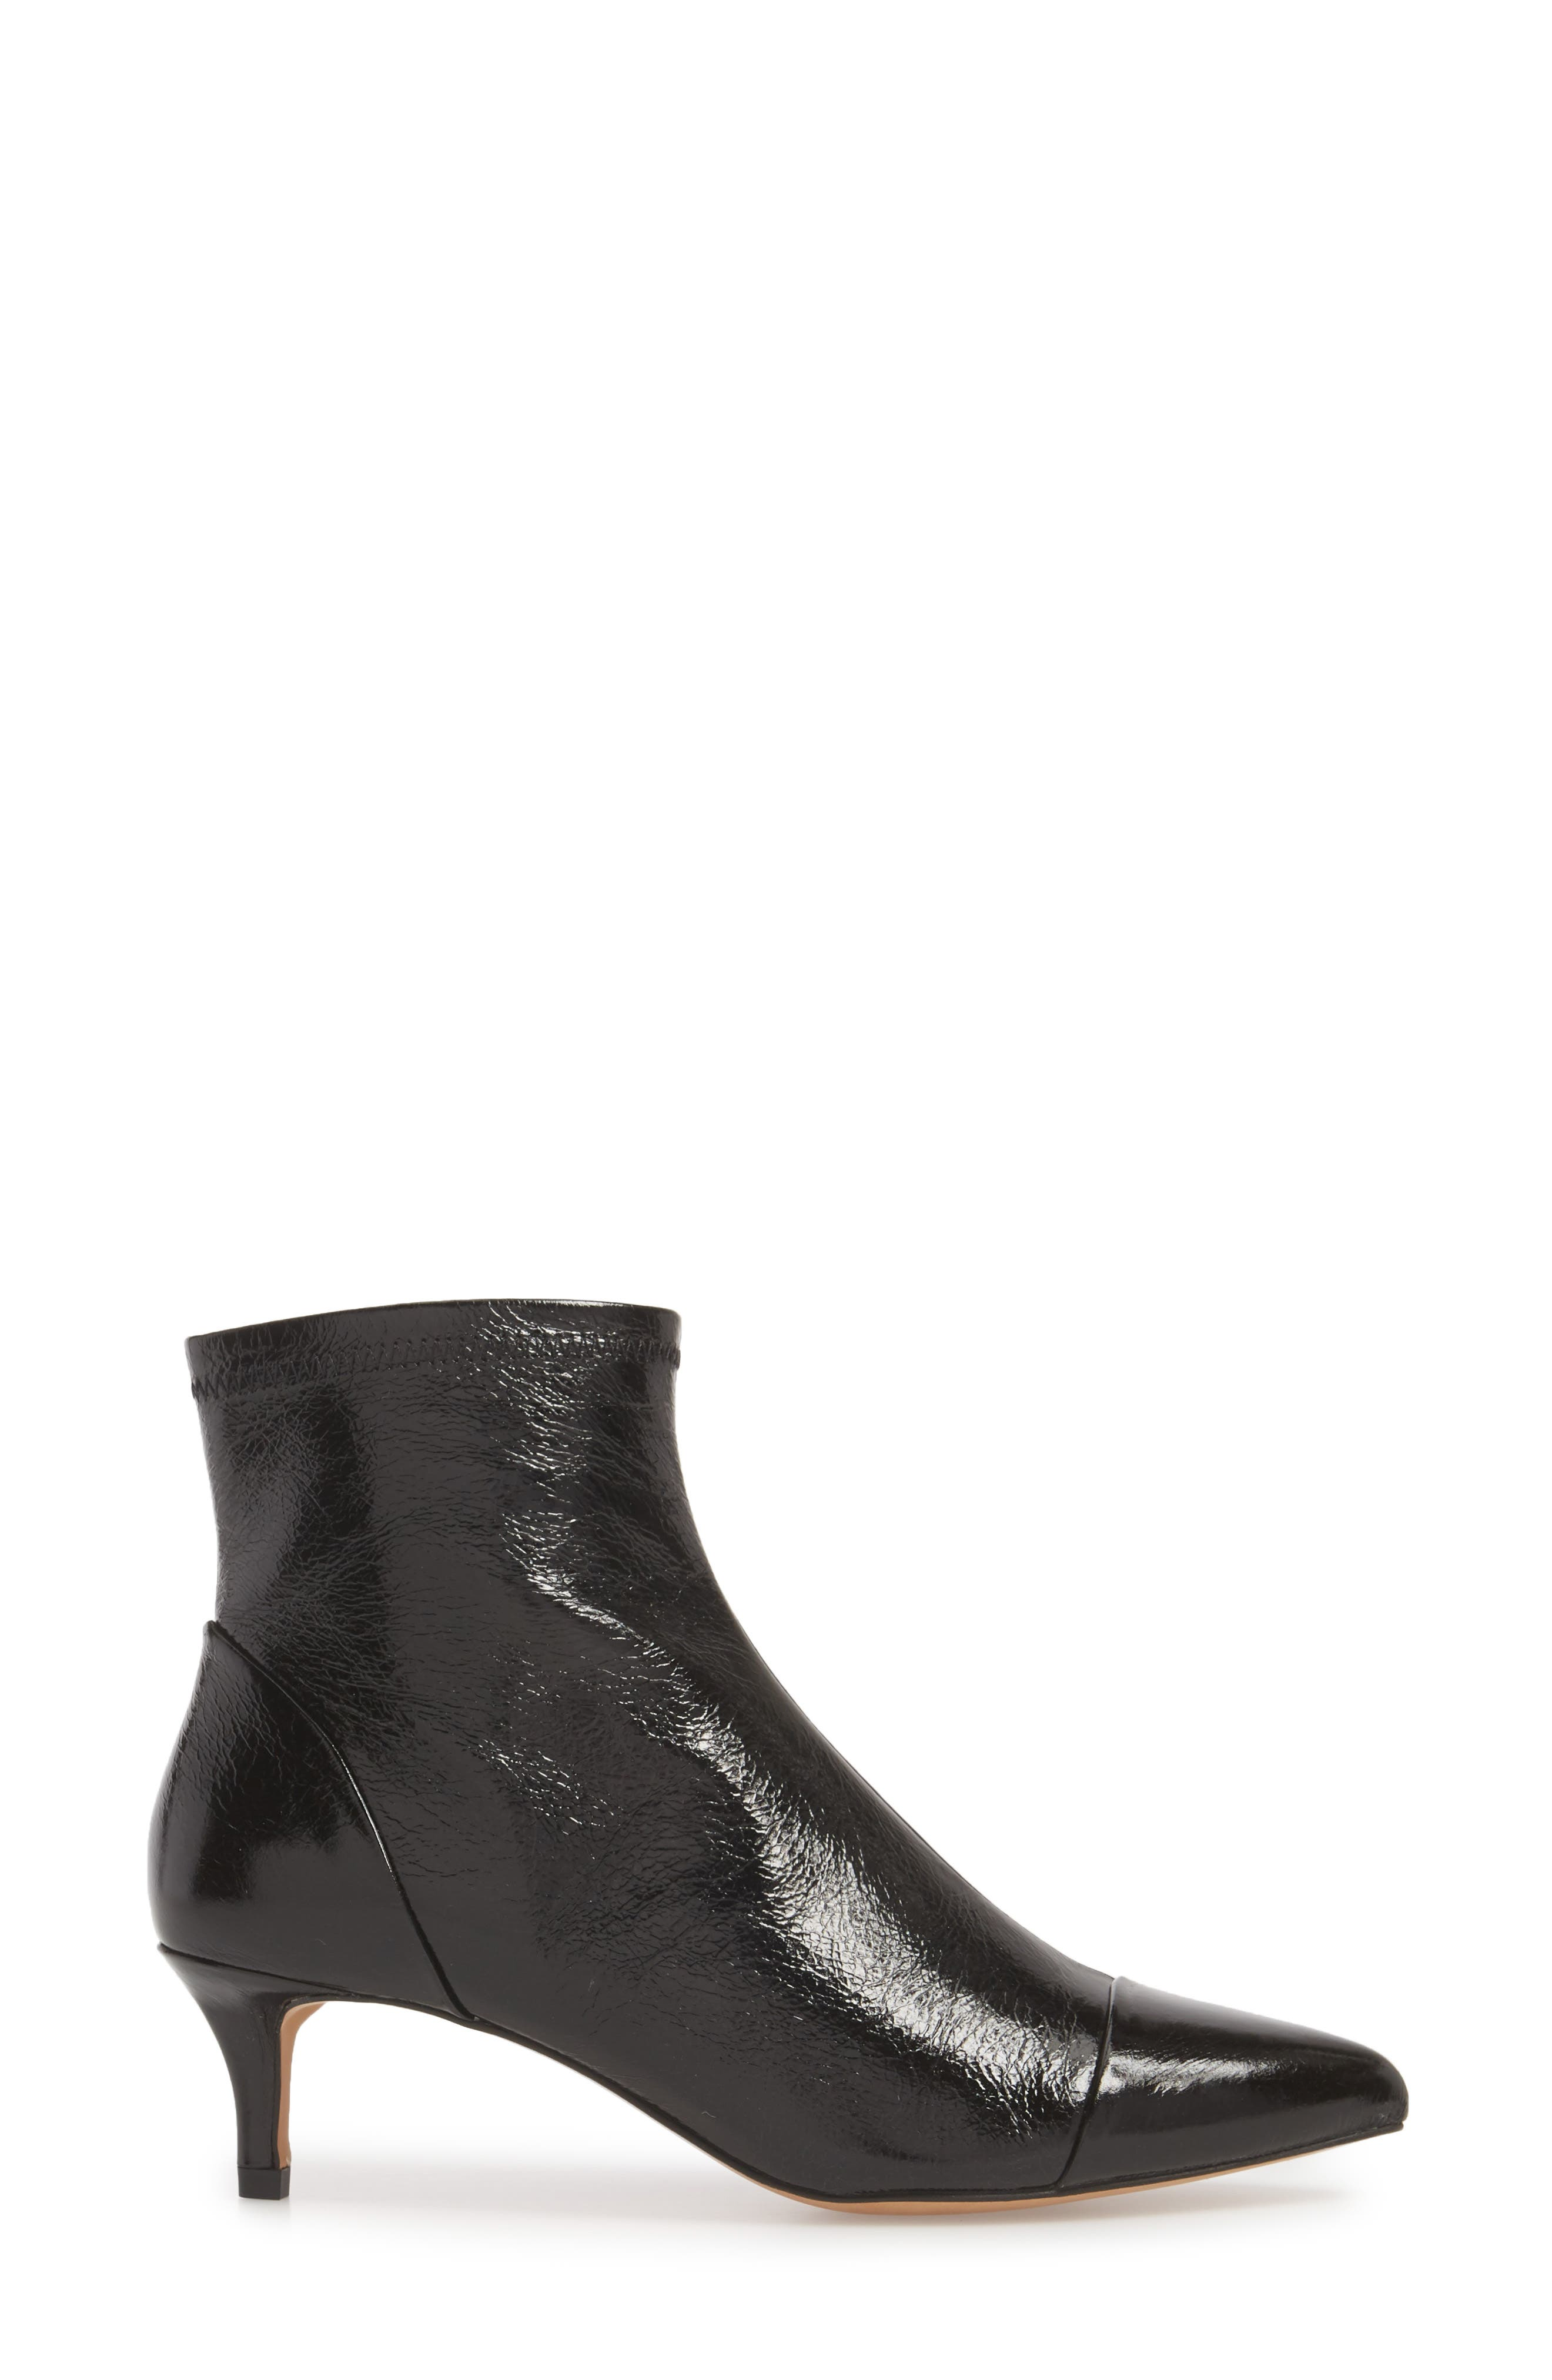 Siya Bootie,                             Alternate thumbnail 3, color,                             BLACK LEATHER